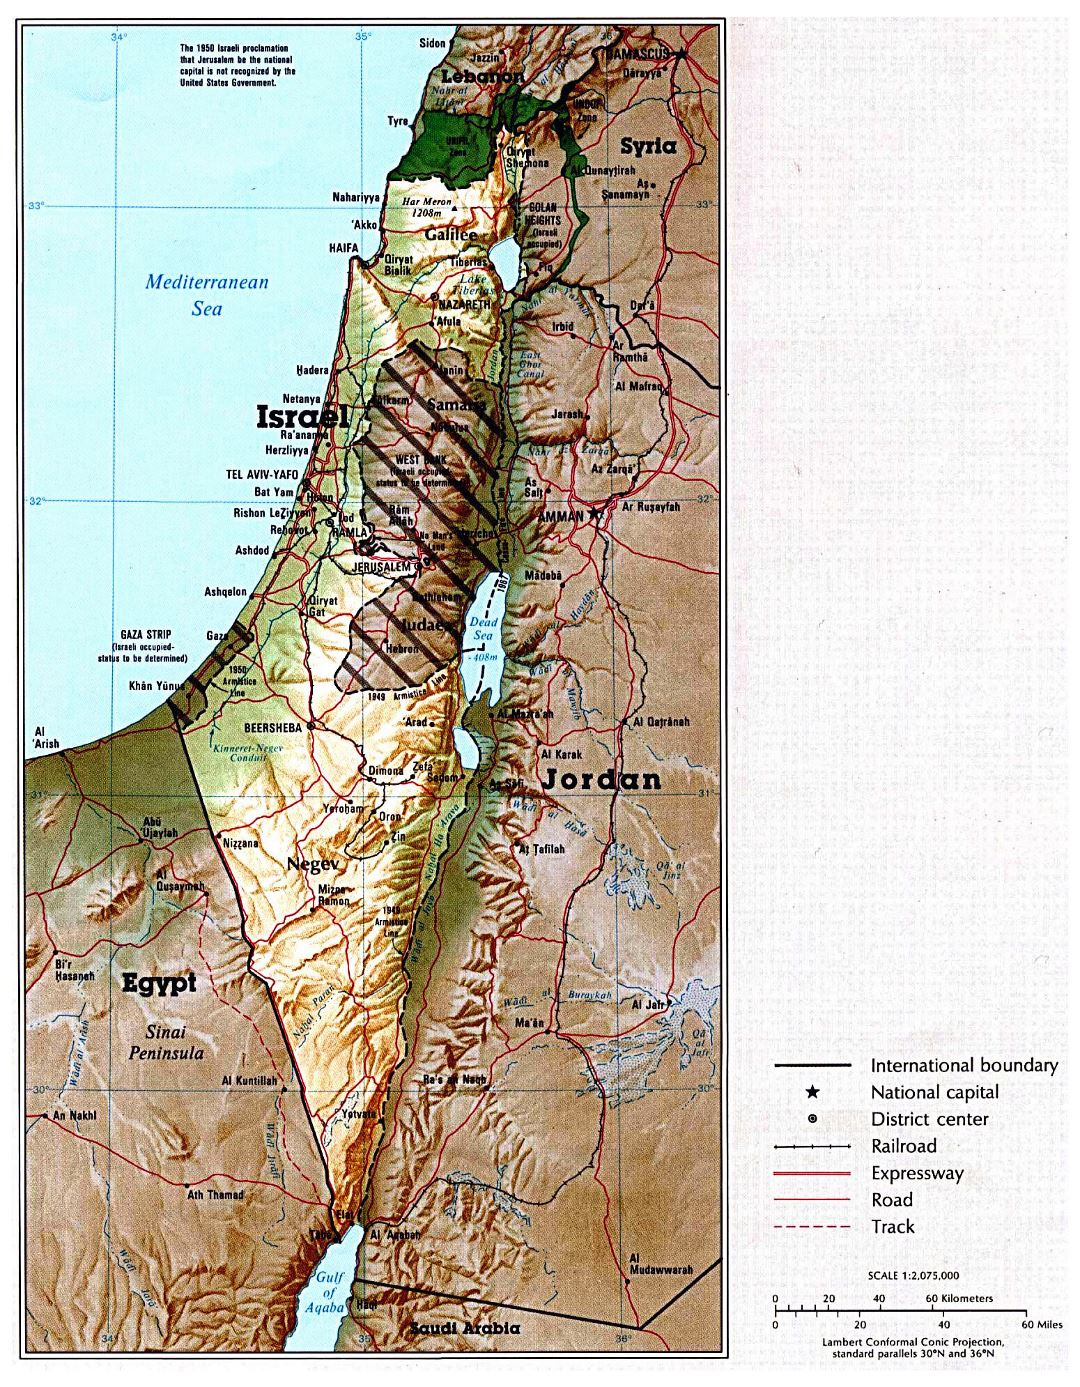 Large political map of Israel with relief, roads, railroads and major cities